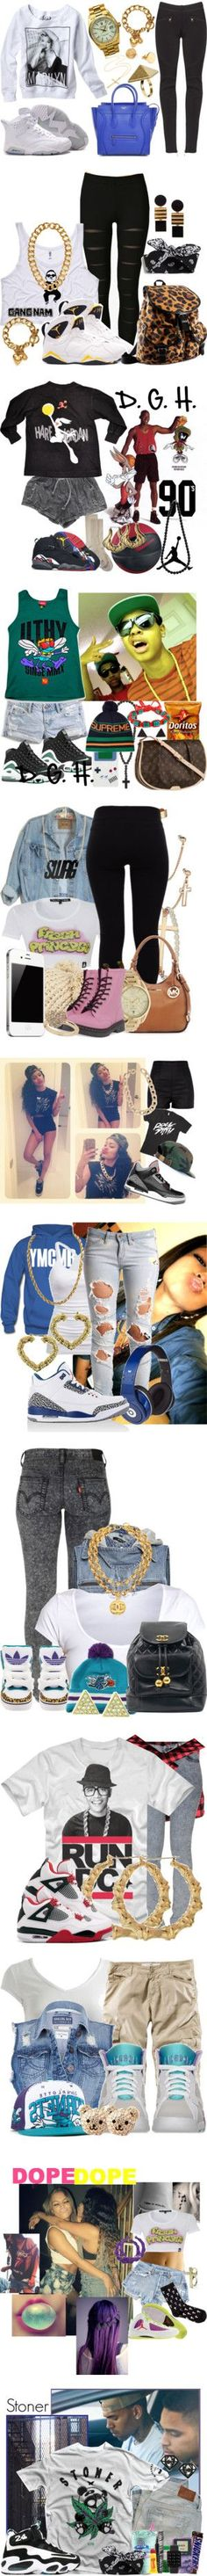 """swagg got chu"" by calichica ❤ liked on Polyvore"